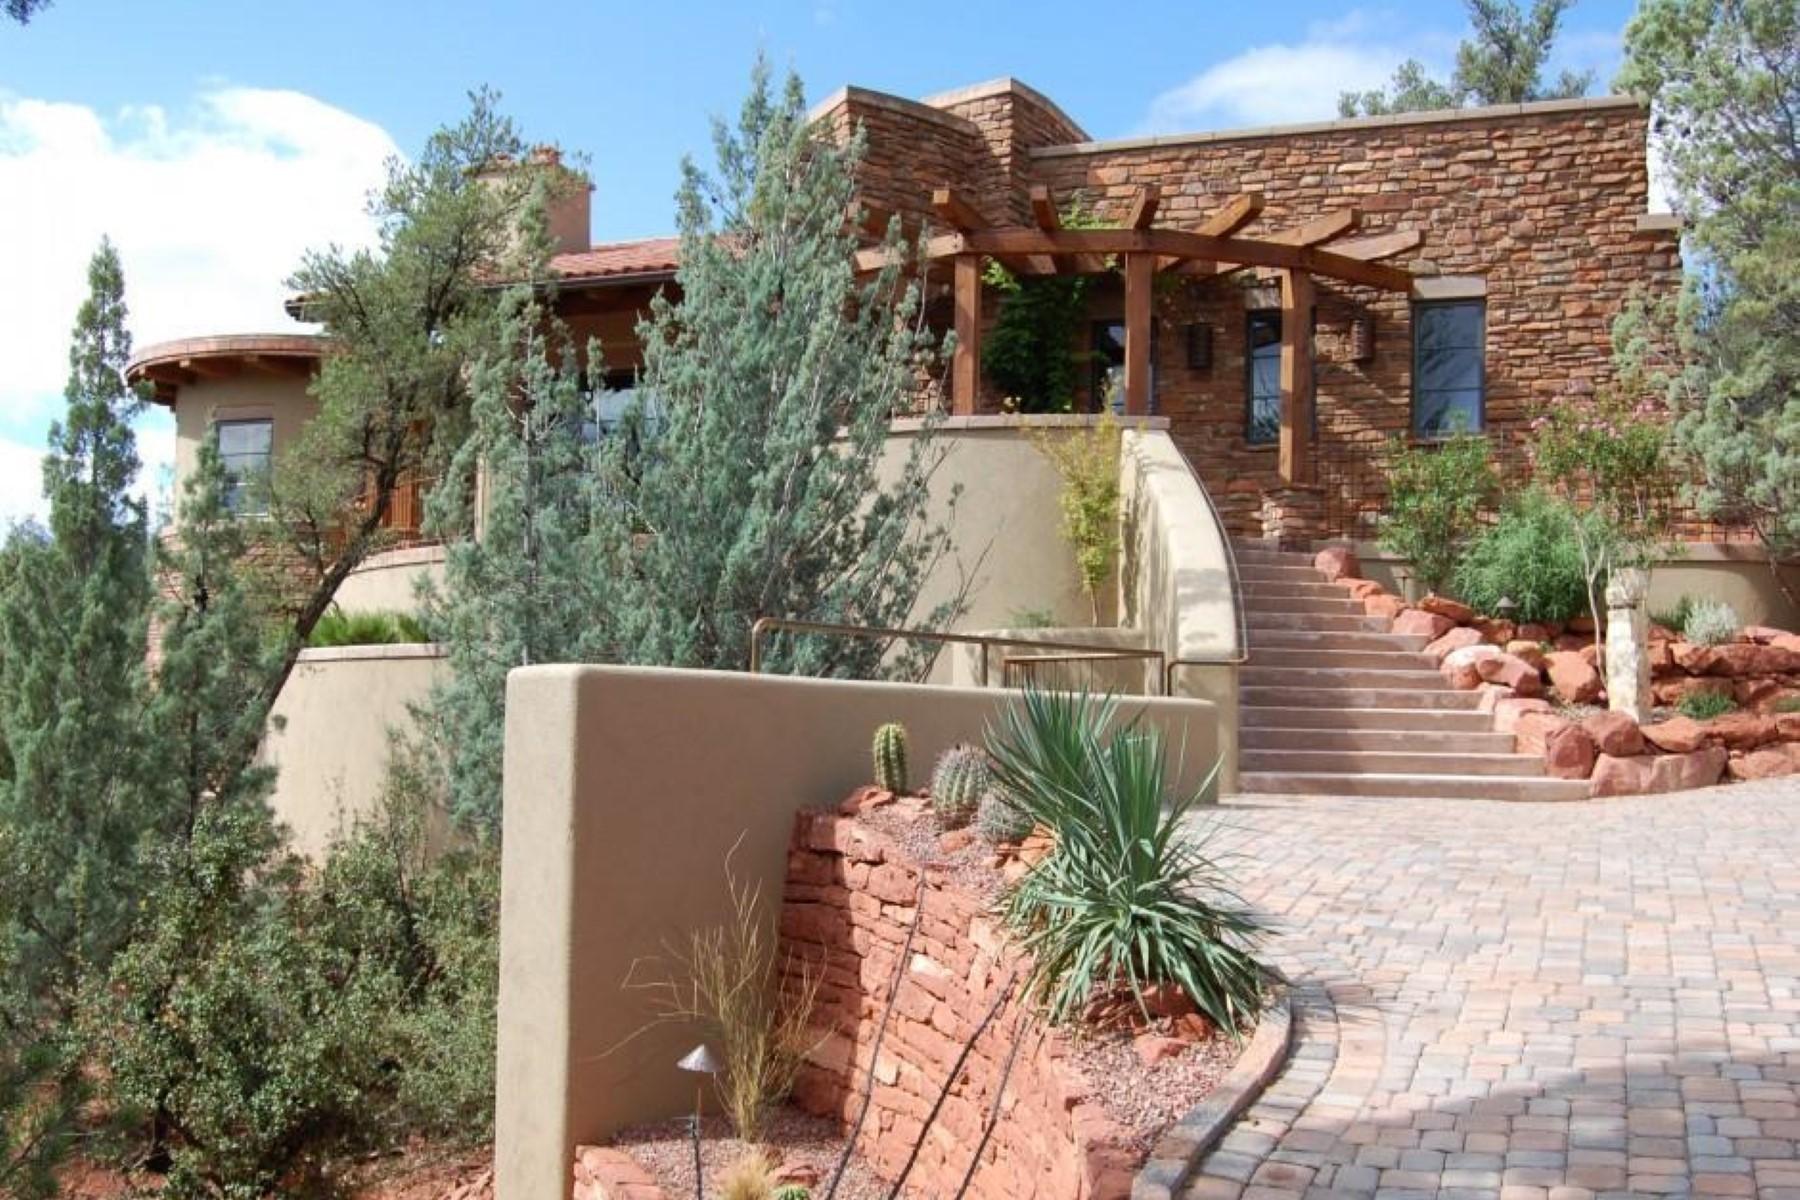 Single Family Home for Sale at Custom Southwest Masterpiece 400 Little Scout Rd Sedona, Arizona, 86336 United States